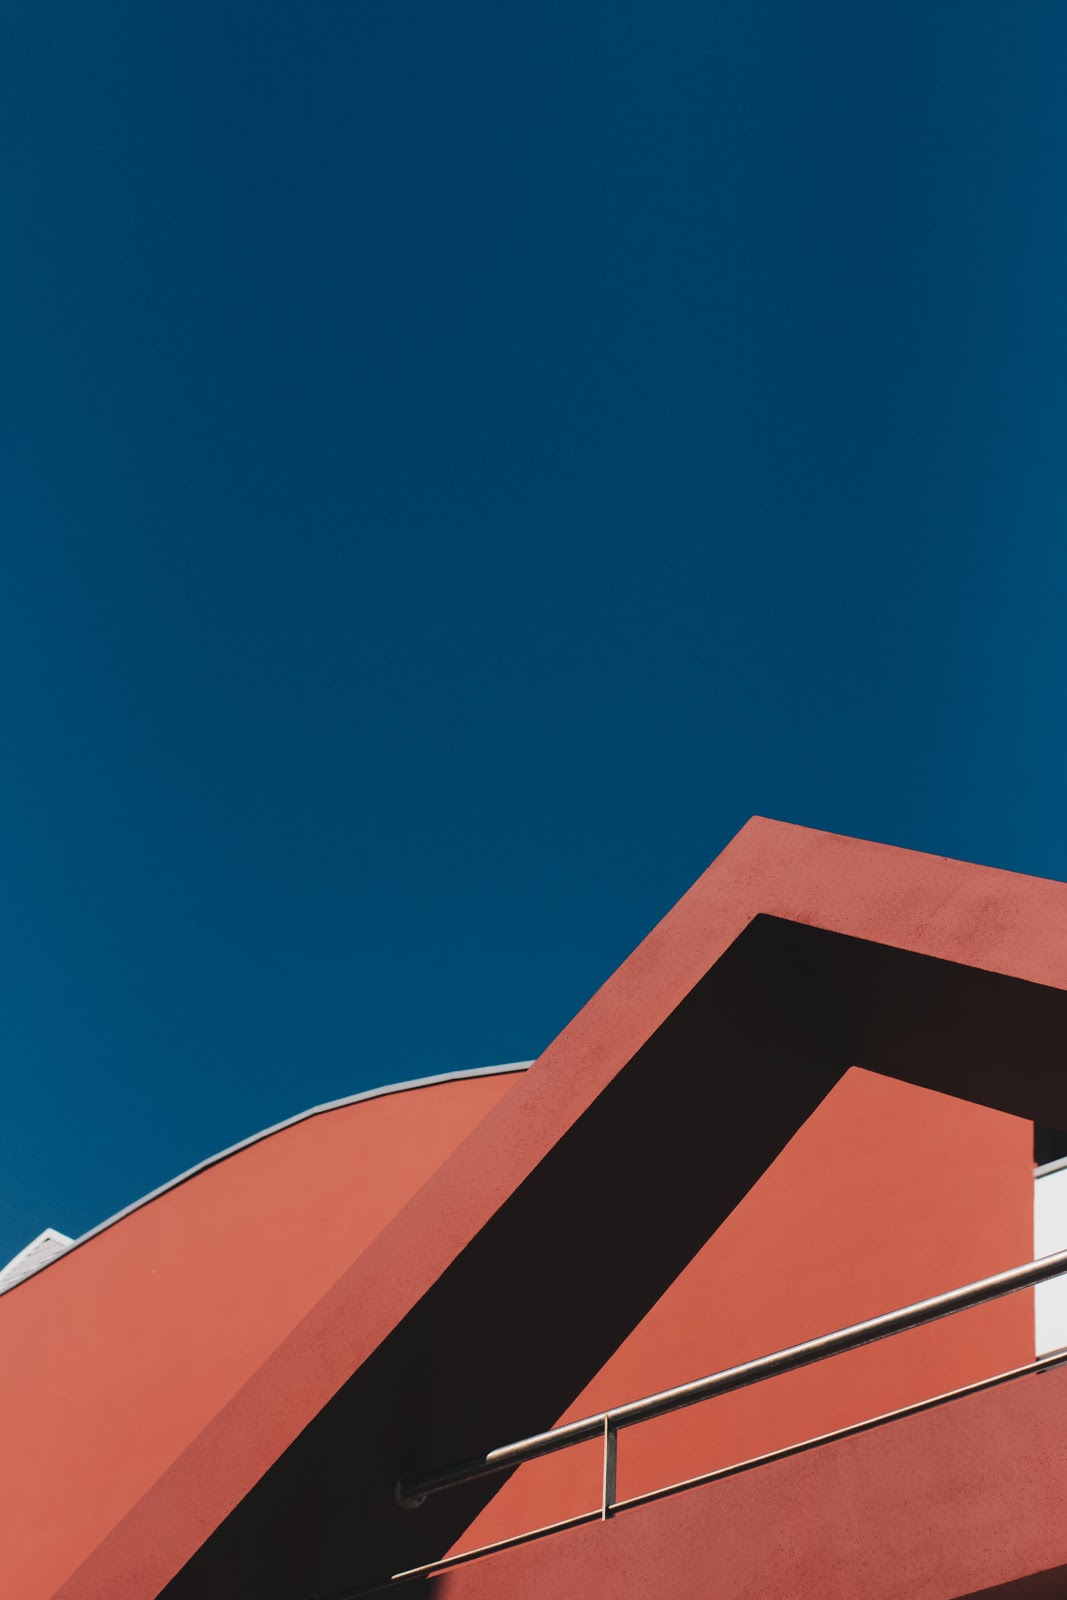 abstract image of a red house